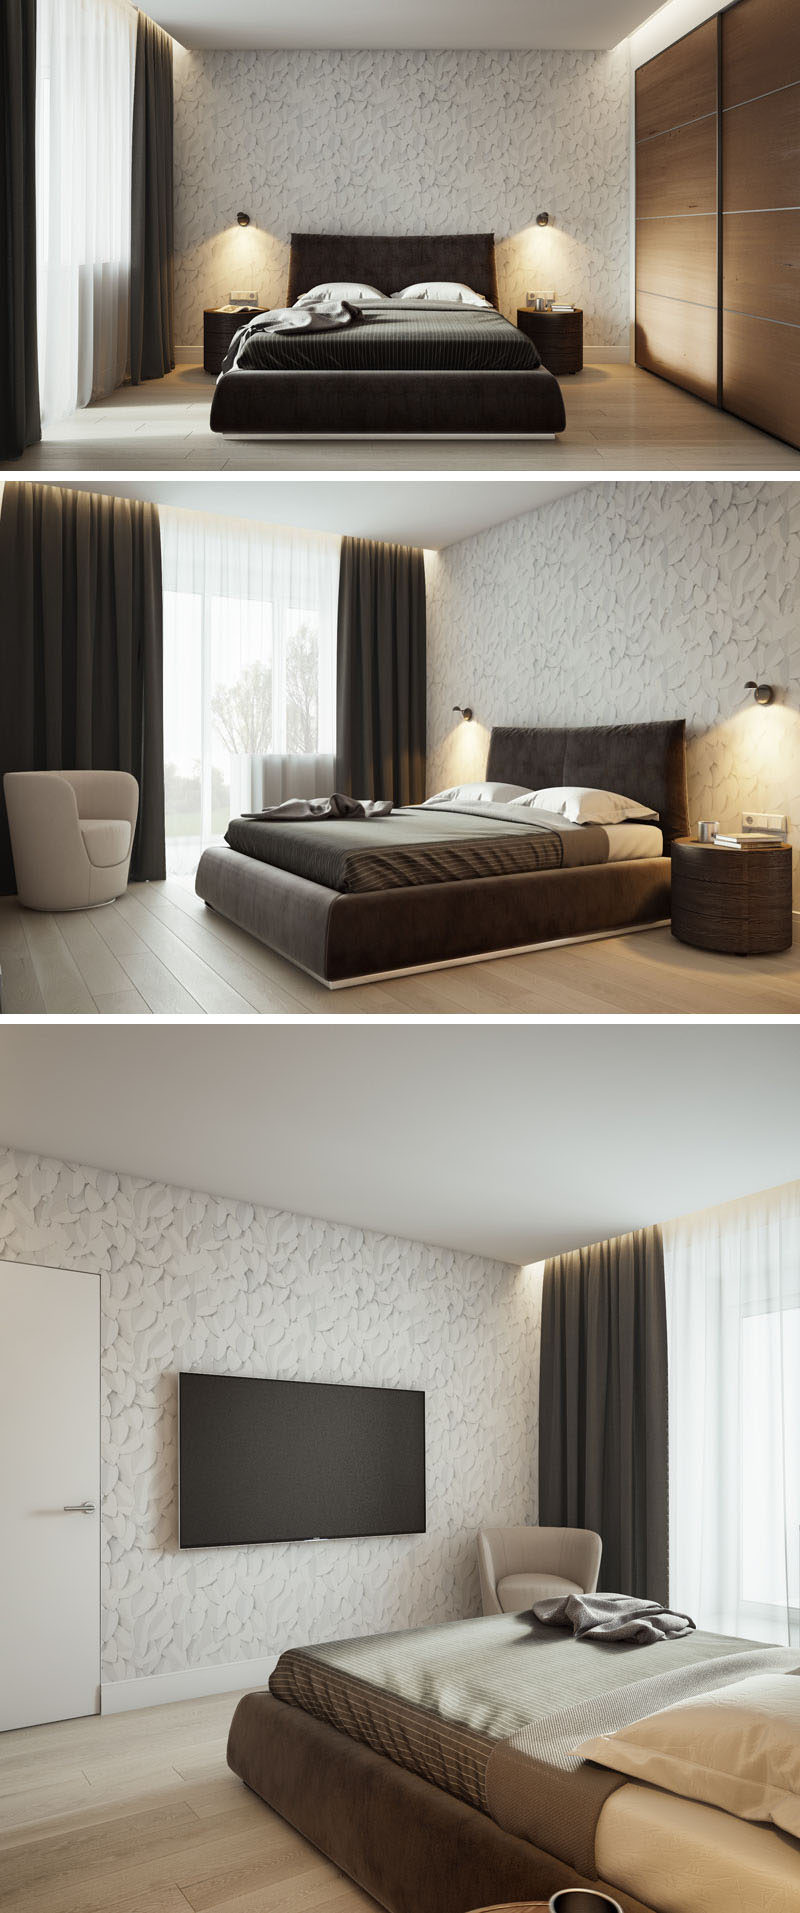 In this modern bedroom, wallpaper with a pattern of handmade sketches of leaves, adds a sense of nature to the room, while closets are hidden behind large sliding wood doors. #Bedroom #ModernBedroom